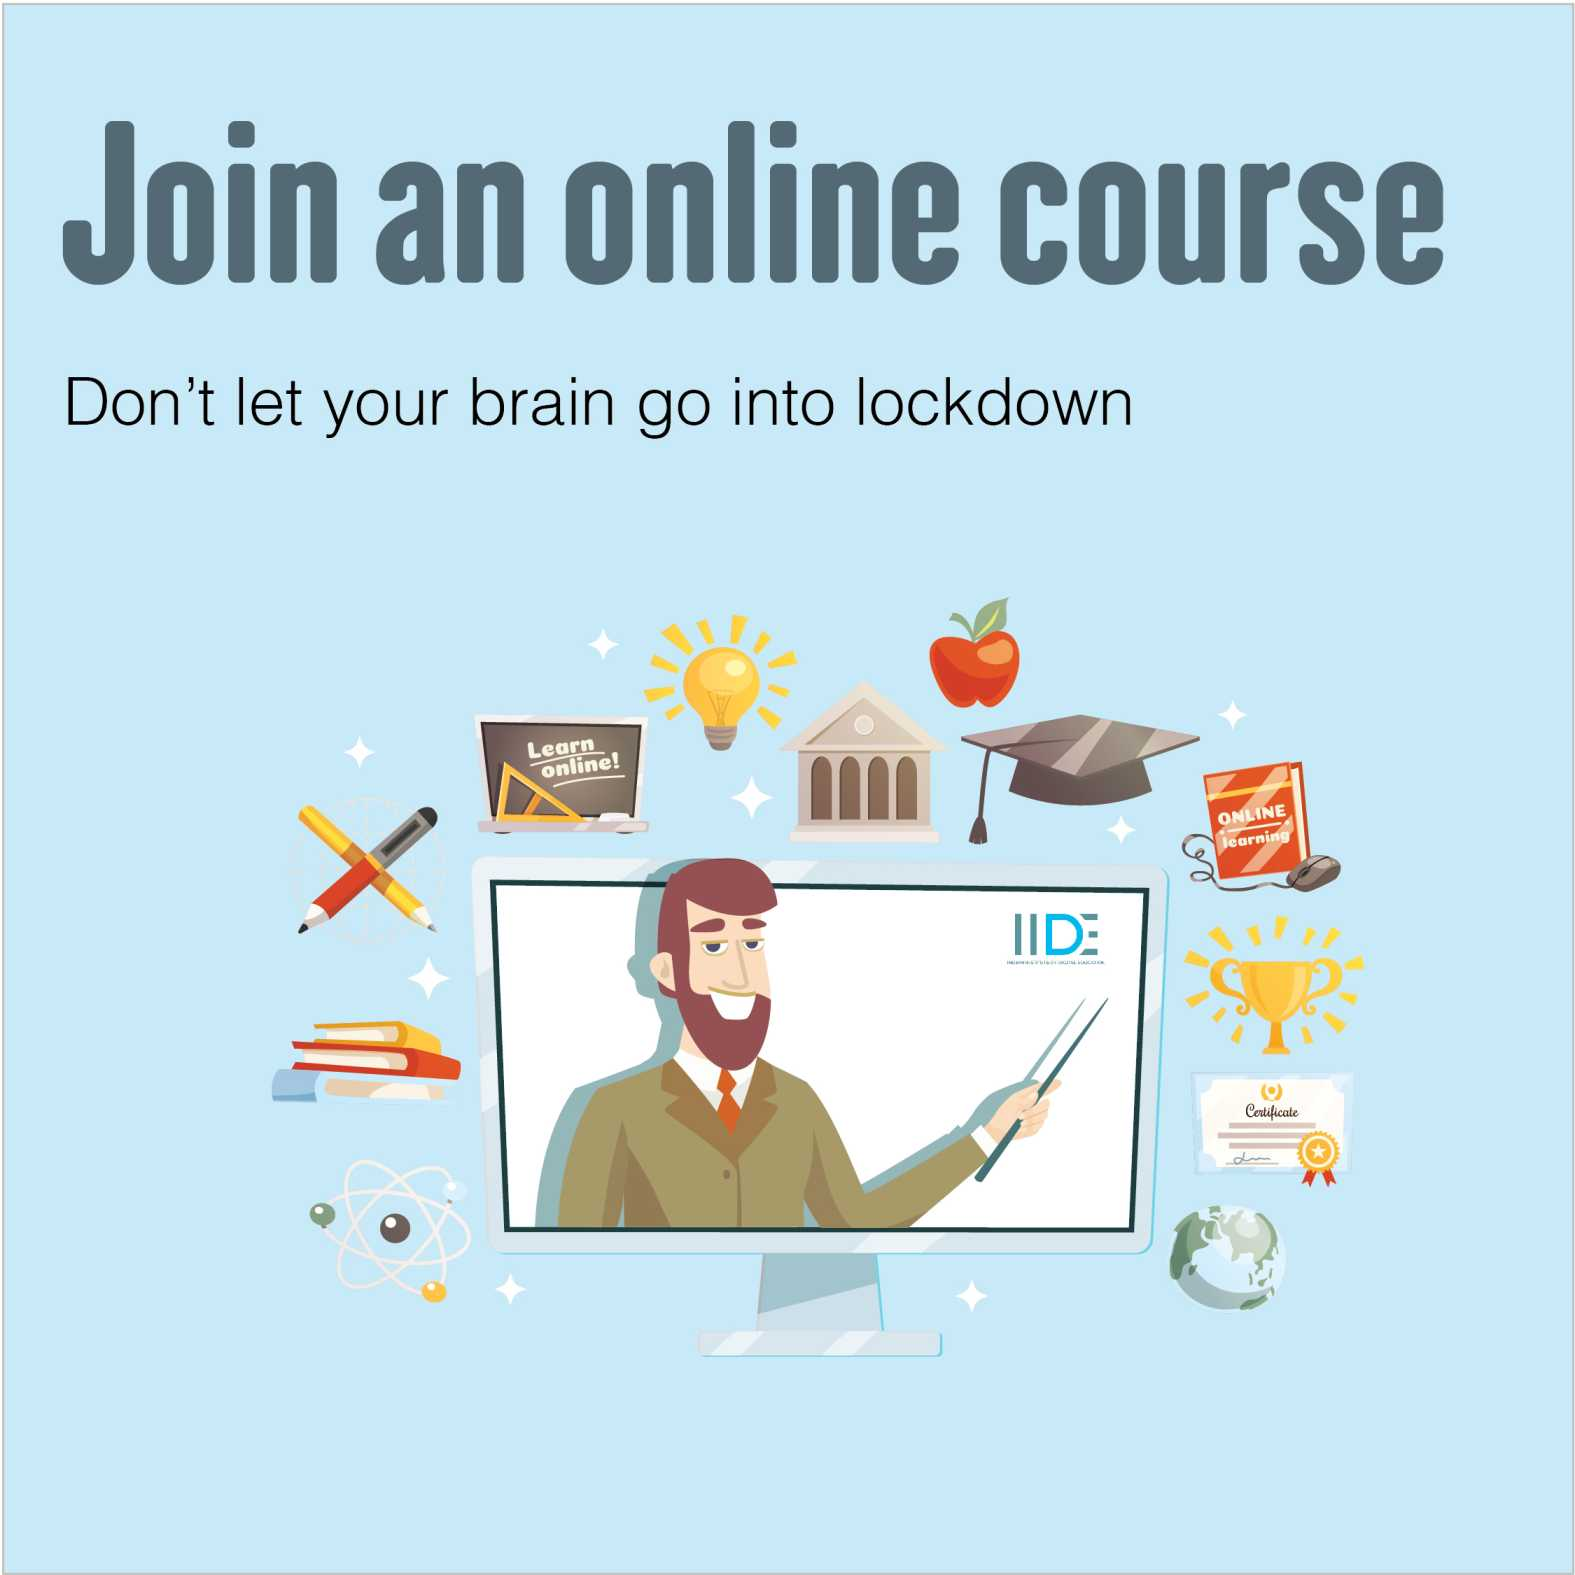 join an online course